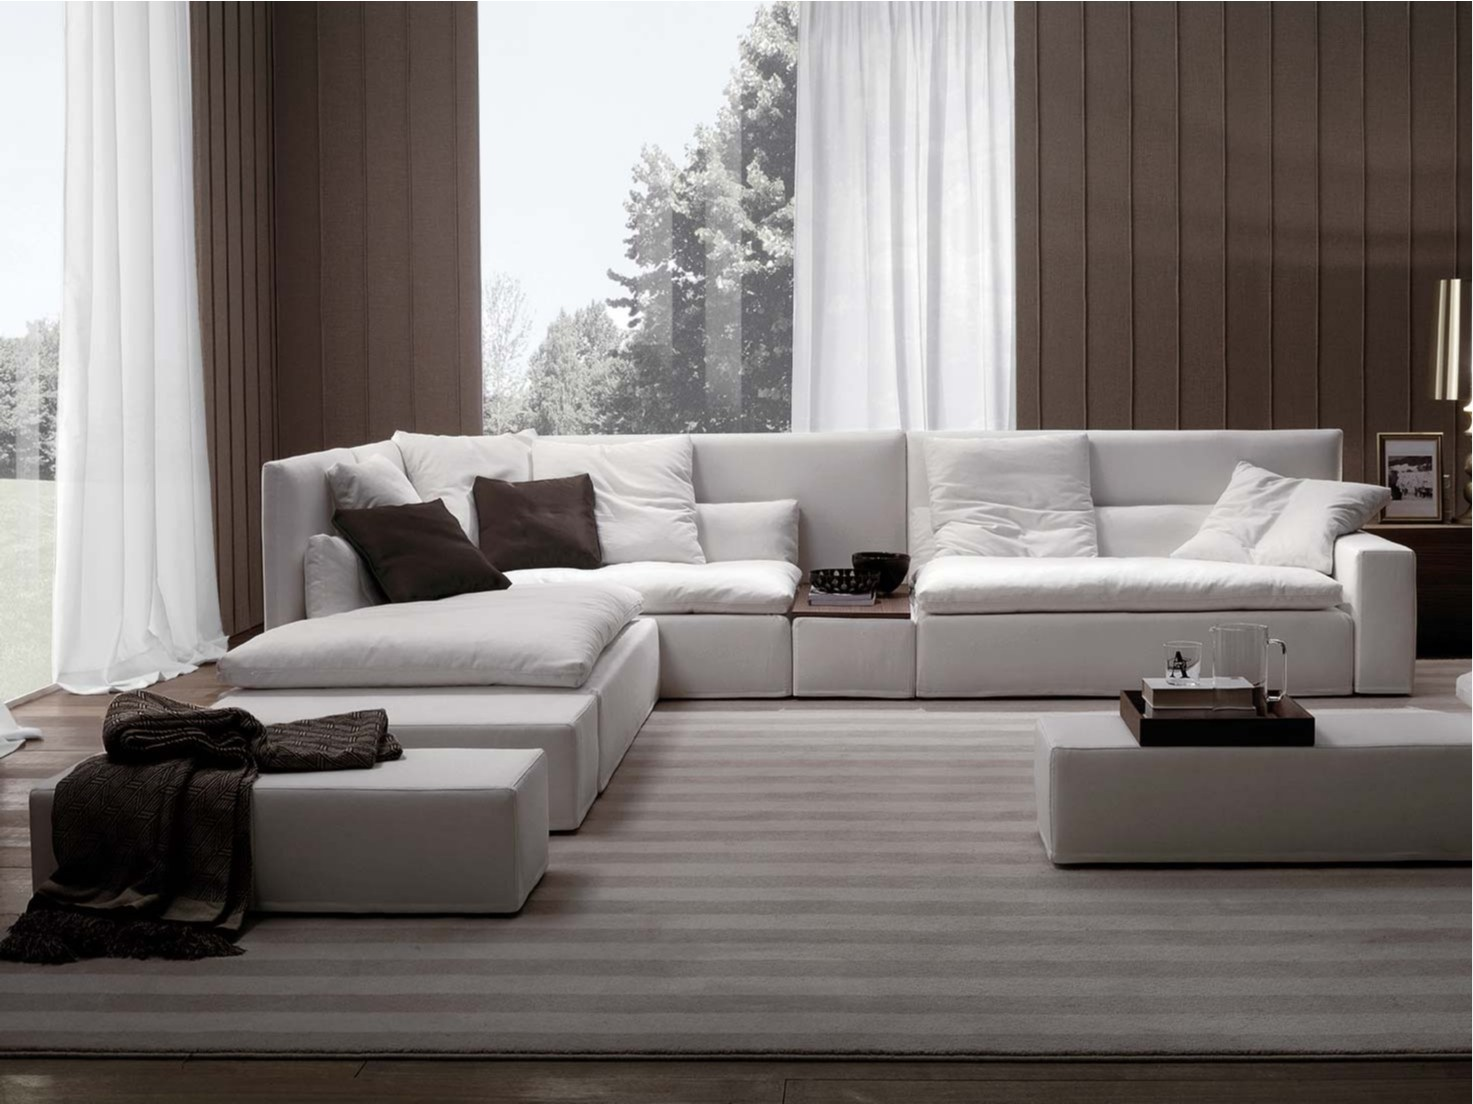 domino divano con schienale alto by frigerio poltrone e divani. Black Bedroom Furniture Sets. Home Design Ideas